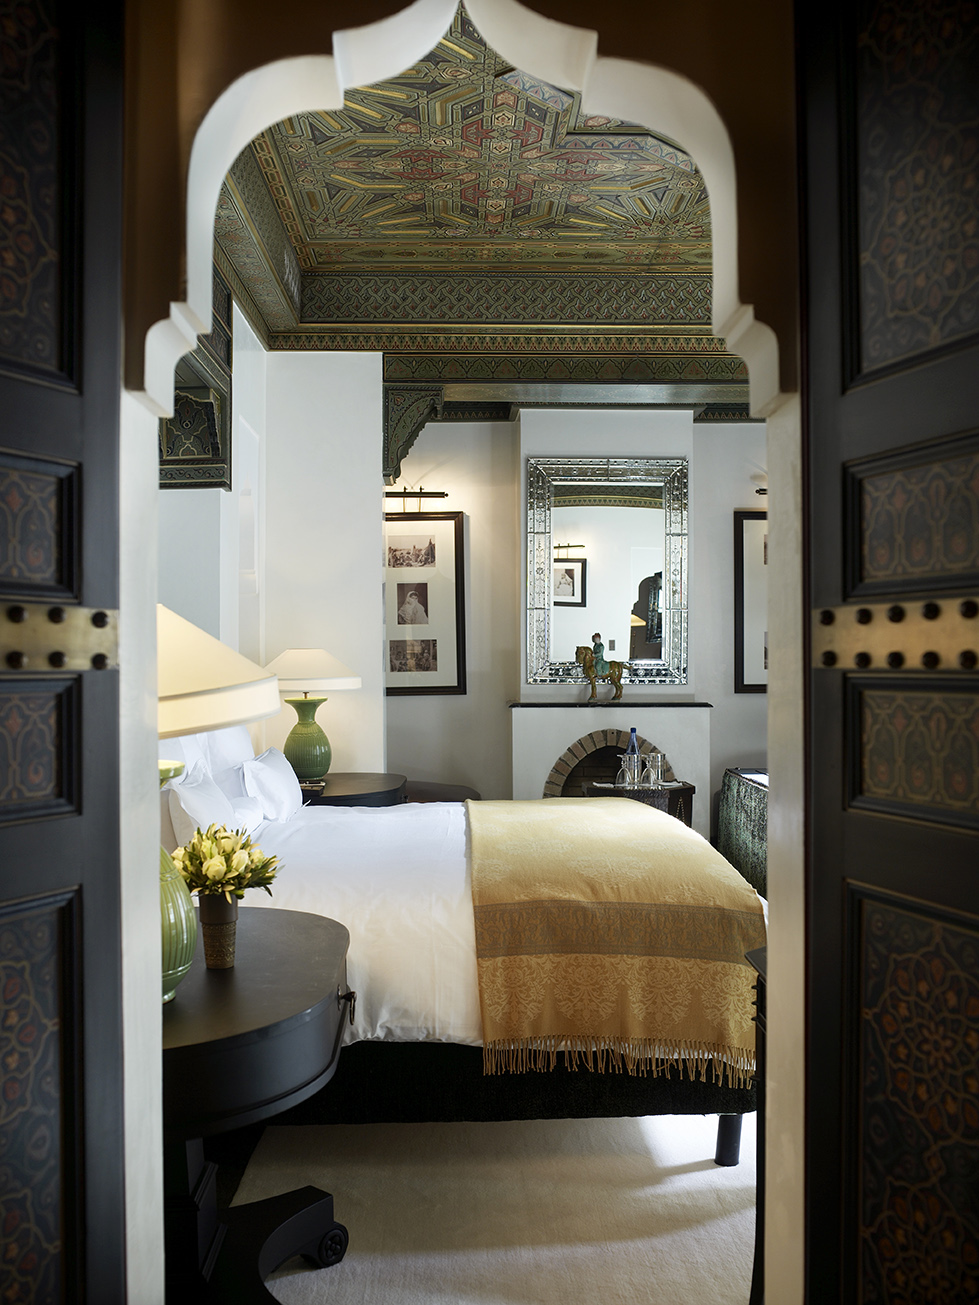 Bedroom Living Prayer Room And Study Room: The Style Saloniste: Return To Marrakech: The Dream Of La